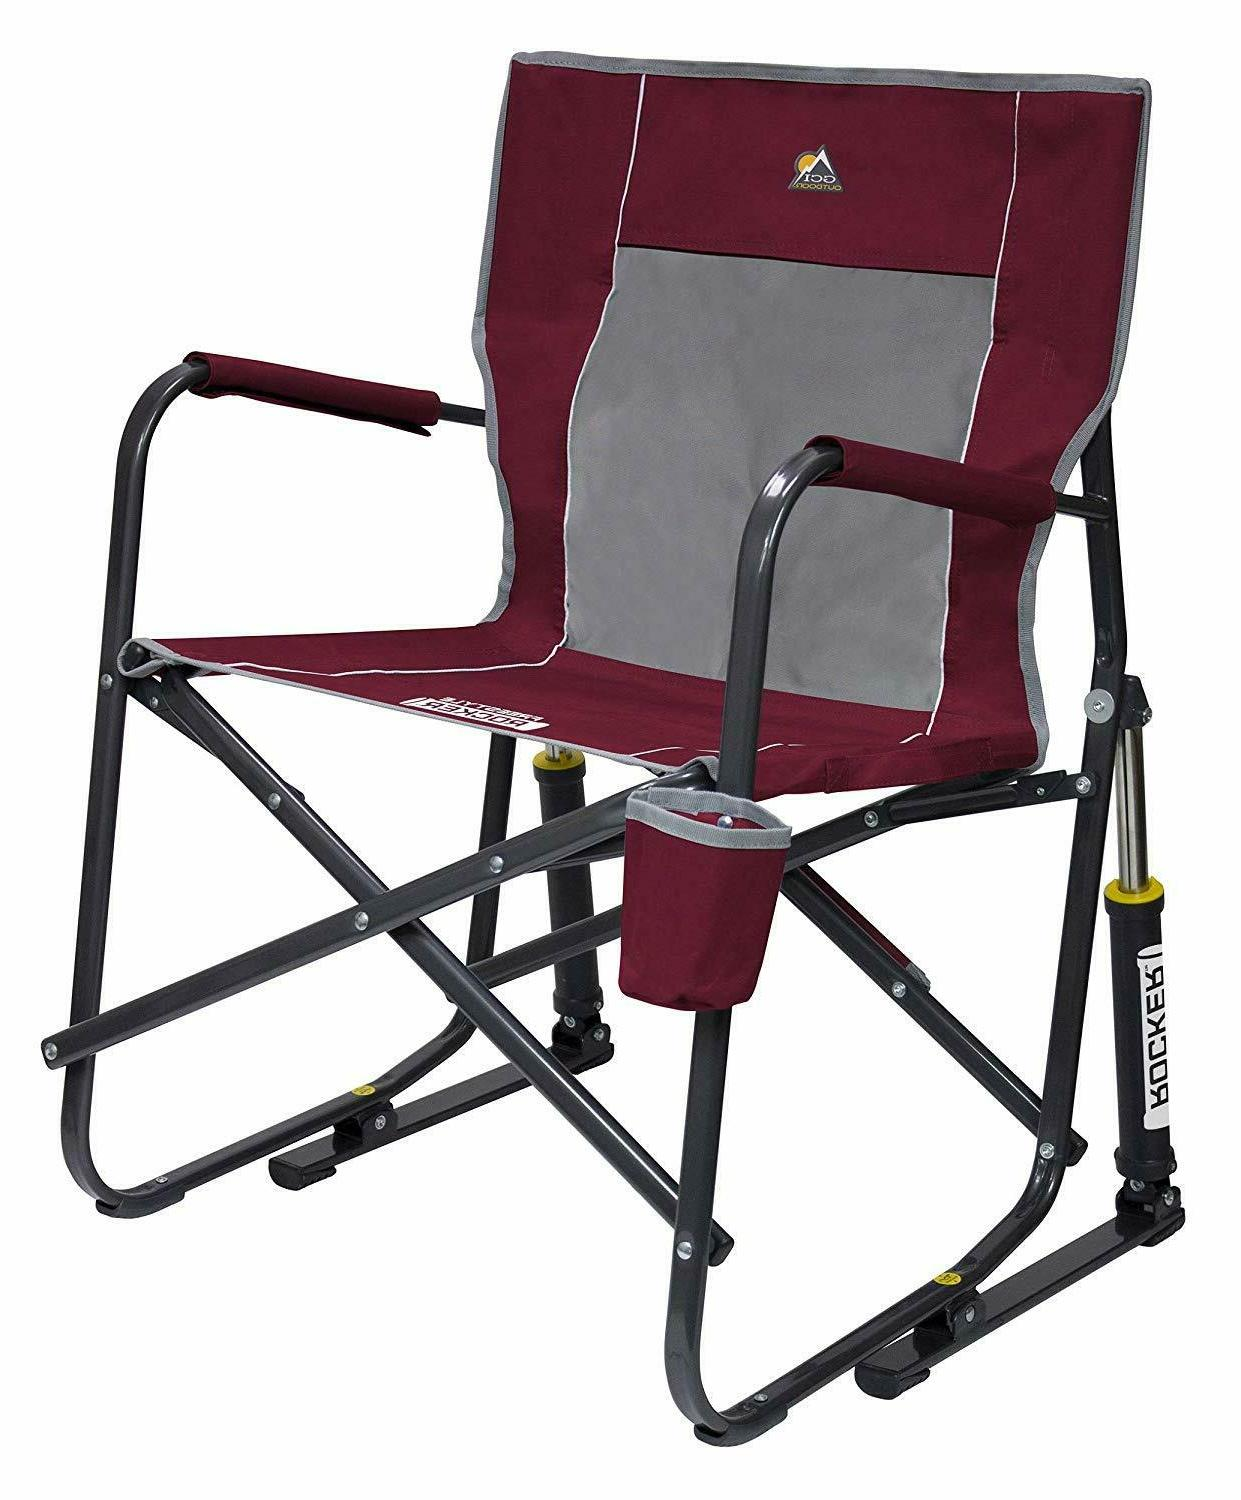 portable folding rocking chair camping lawn outdoor